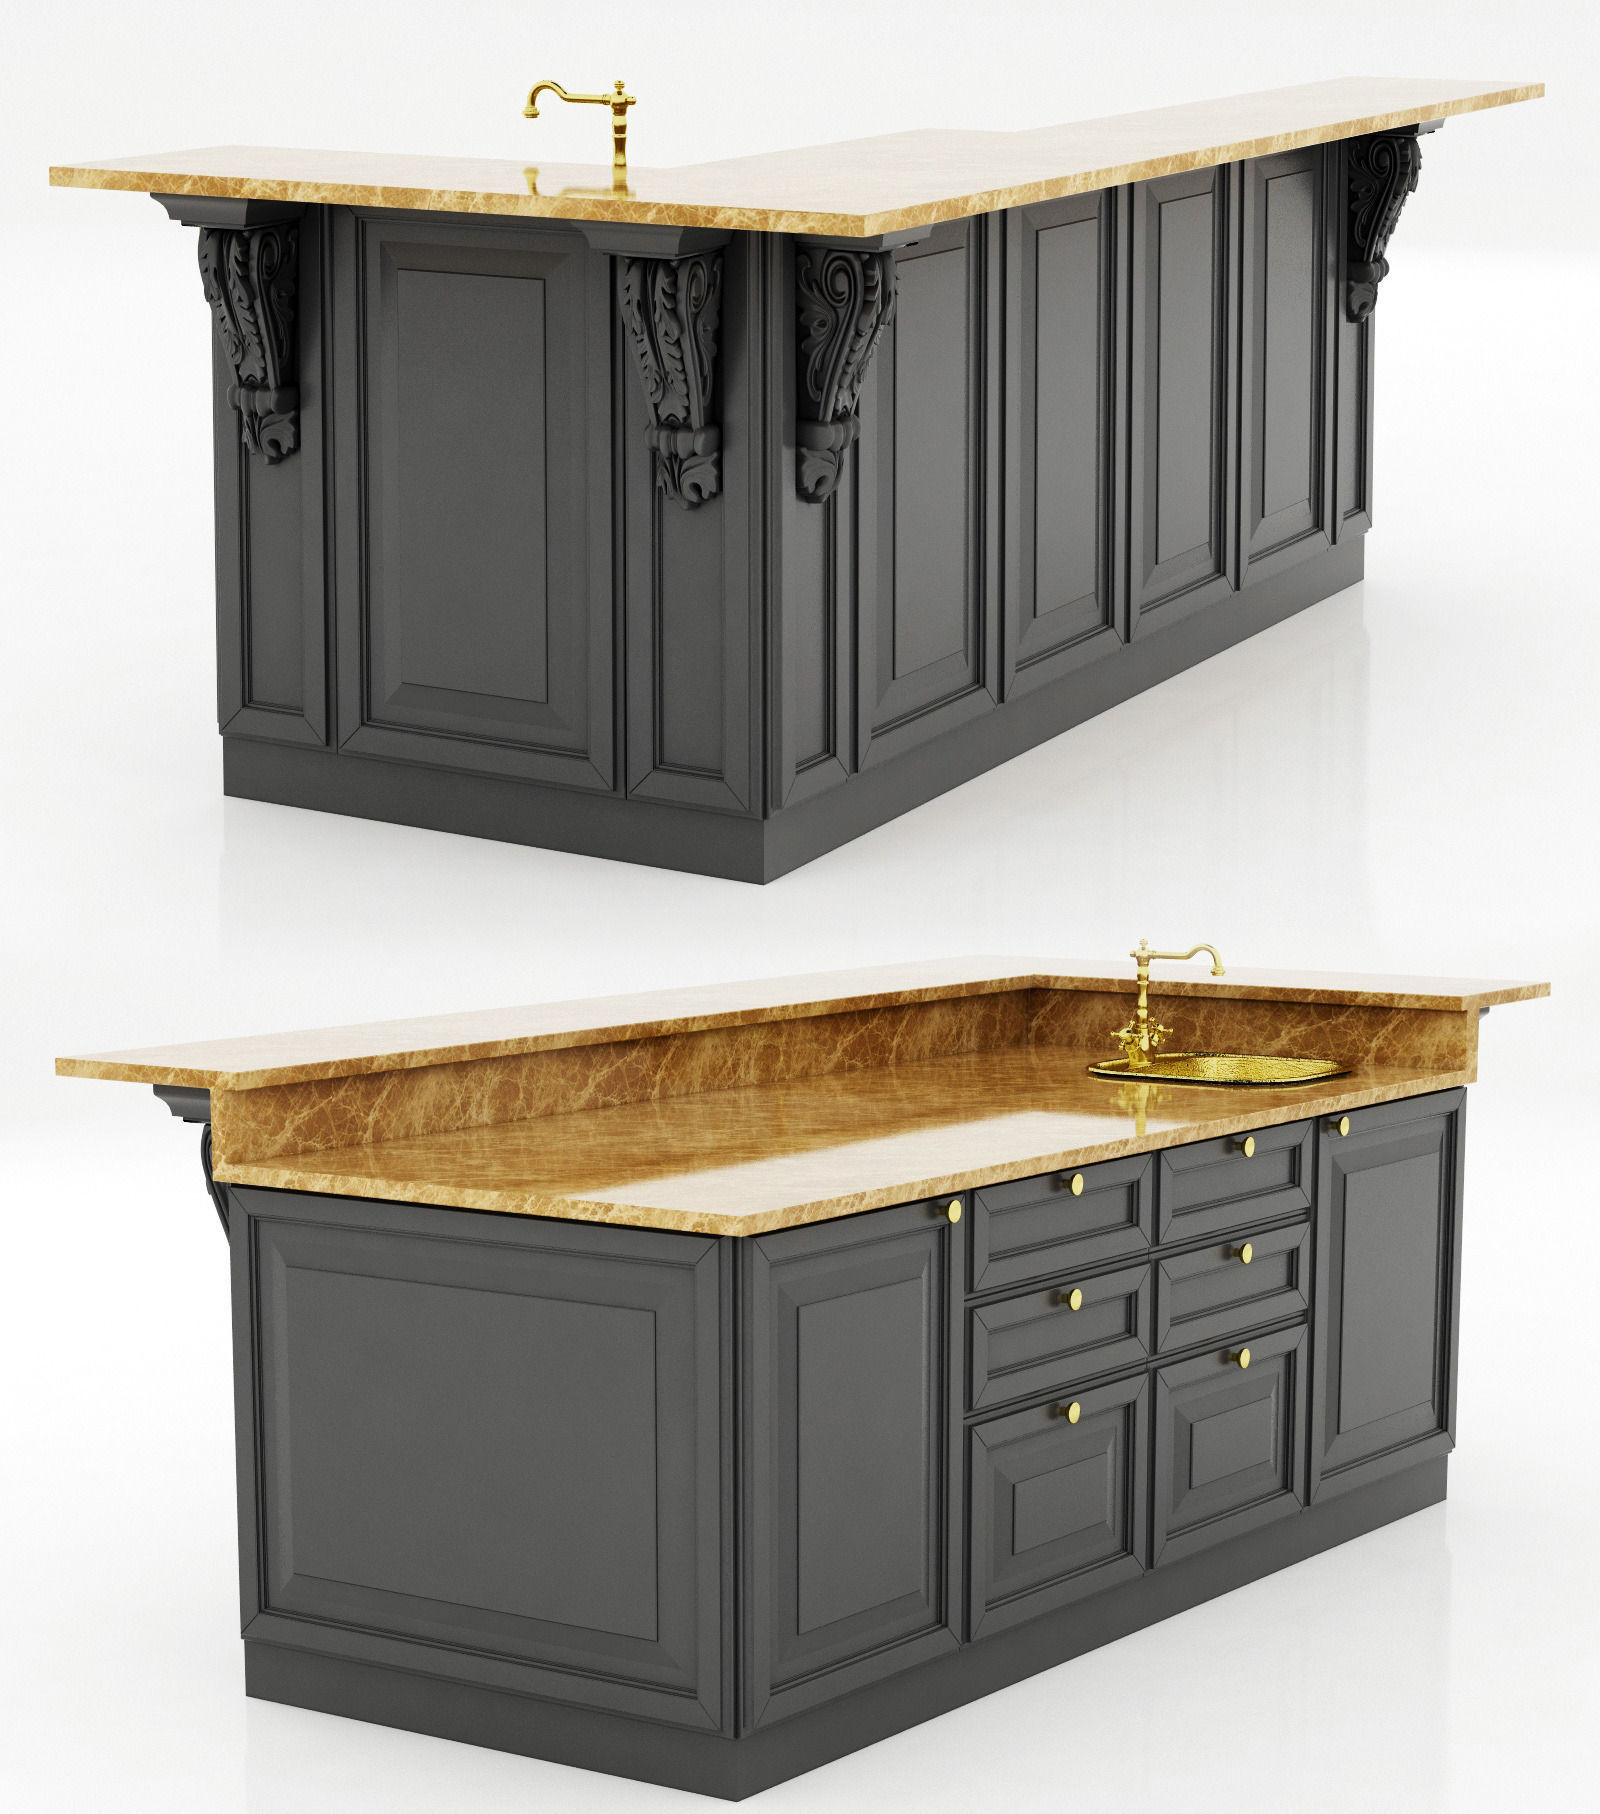 Colonial Kitchen Island 3d Model Cgtrader Throughout Kitchen Island 3d Model Design Design Ideas